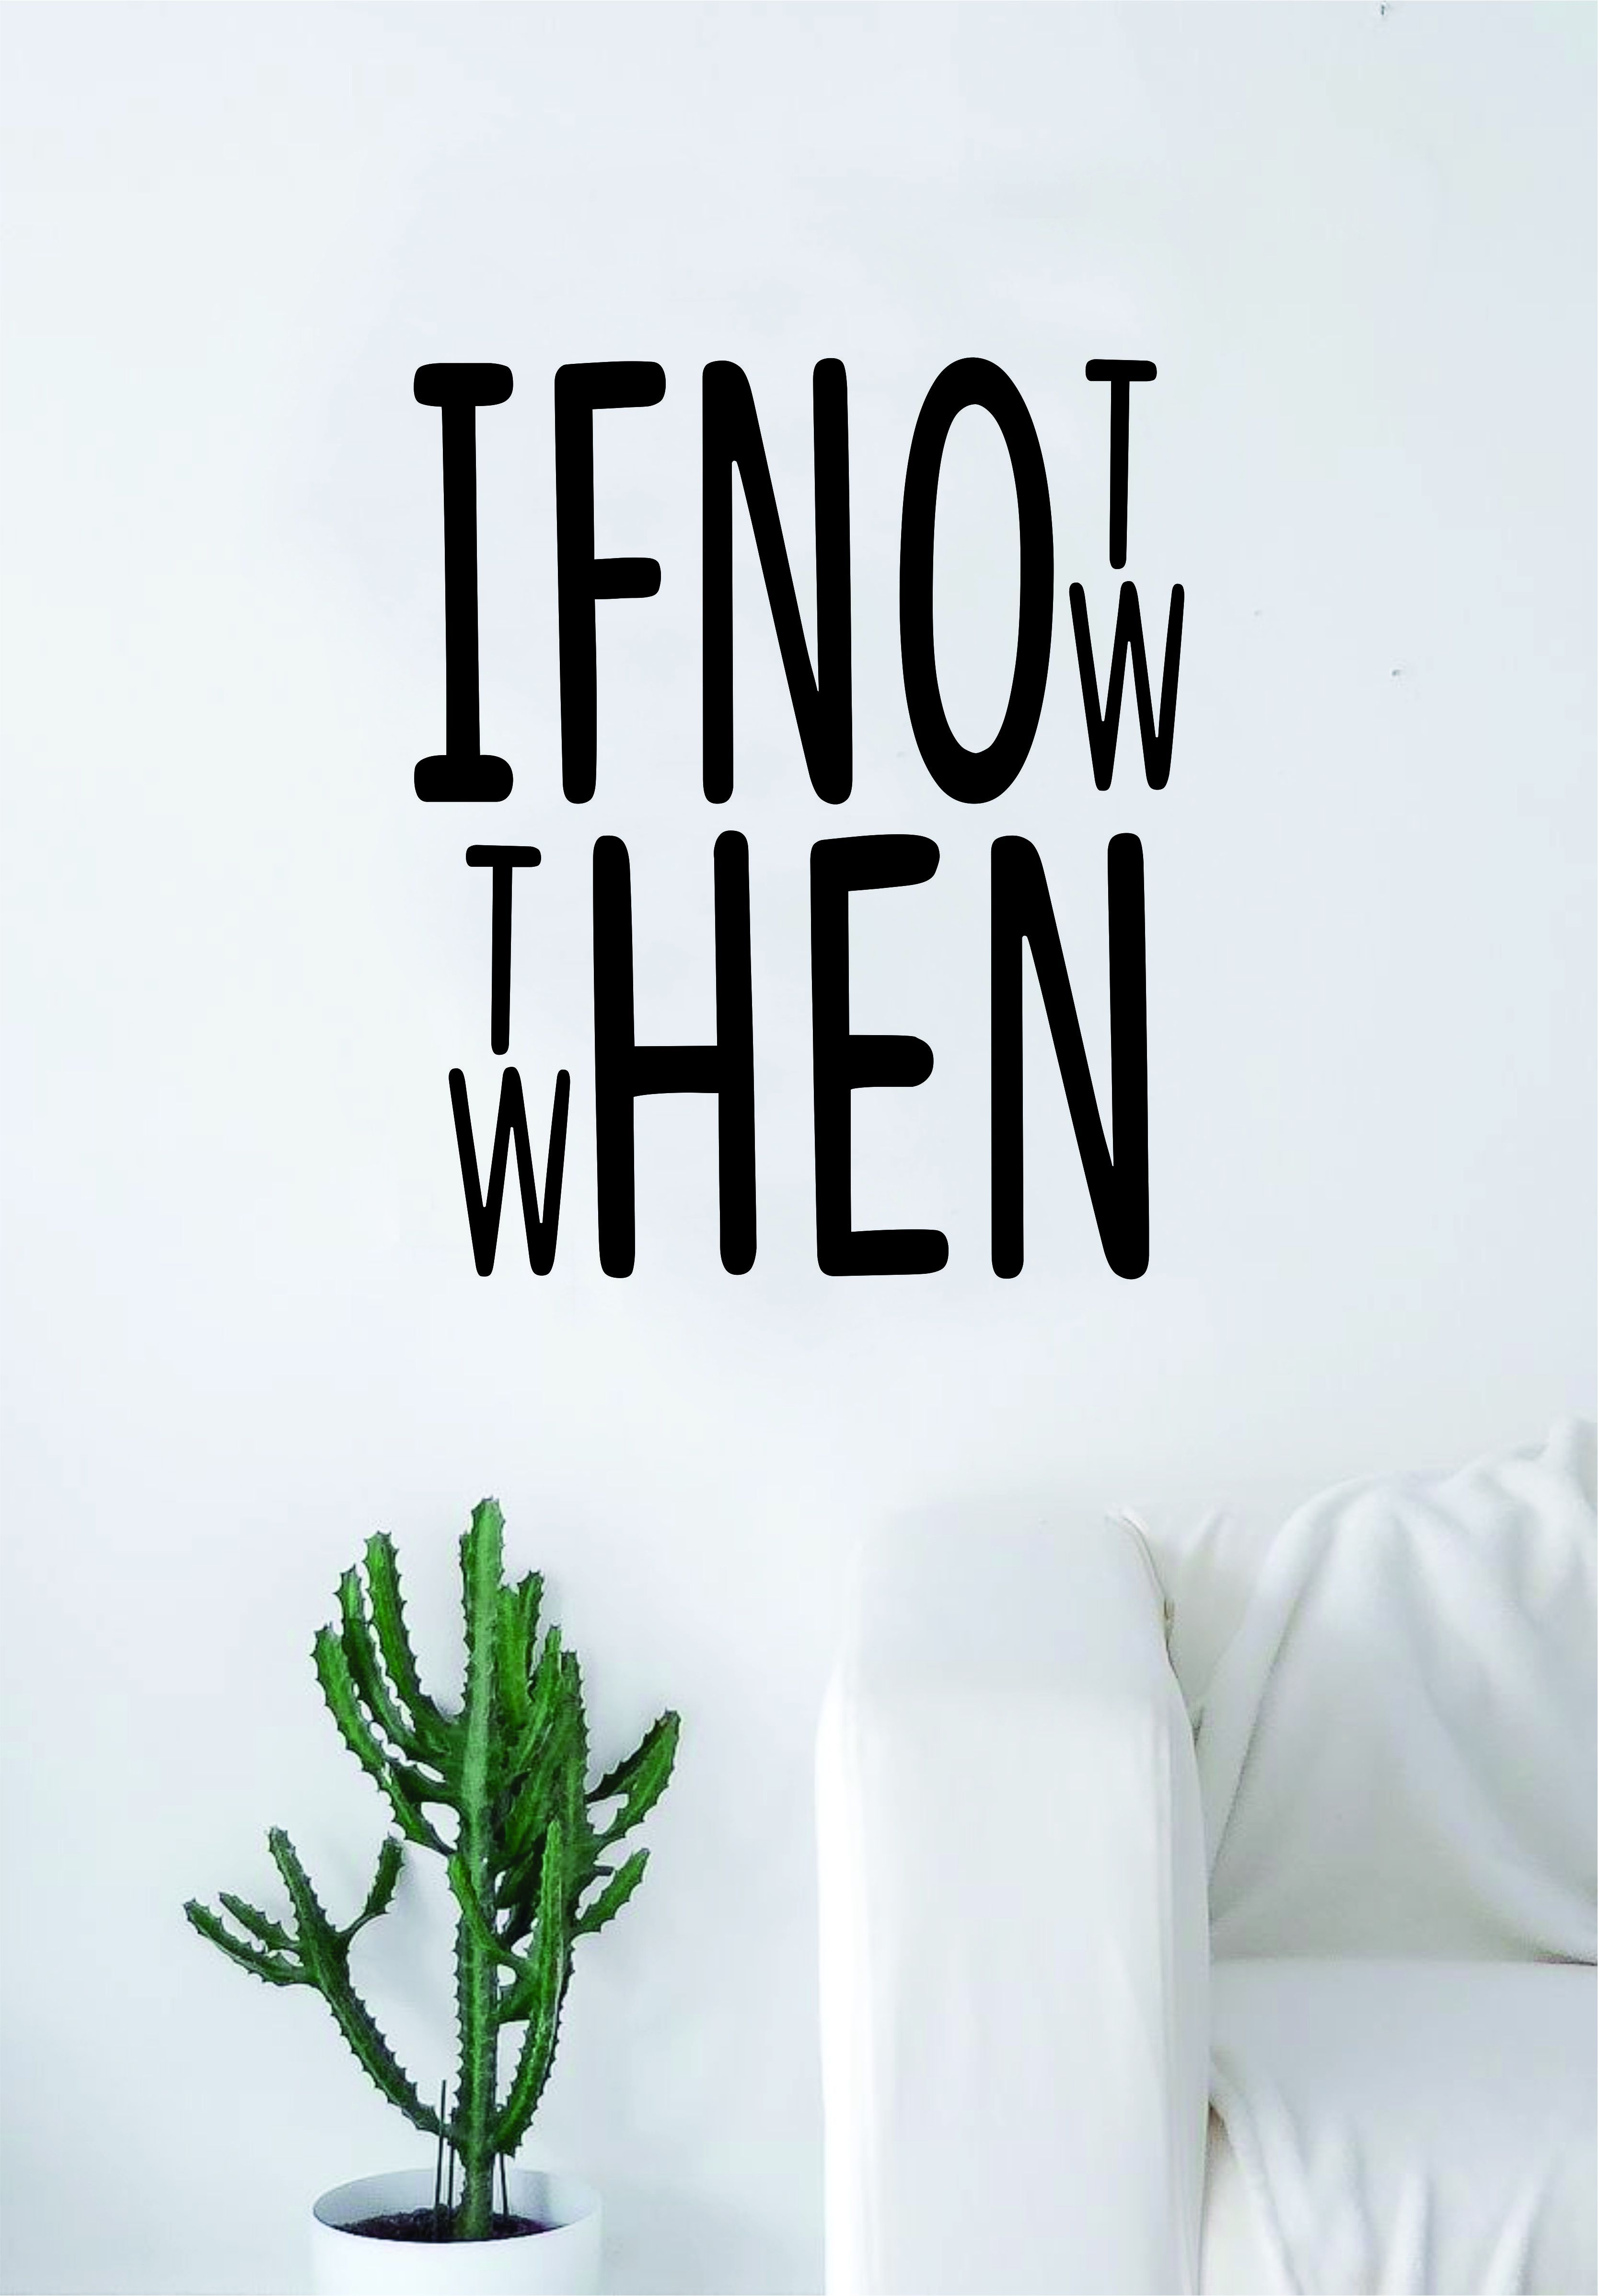 If not now then when quote wall decal sticker bedroom living room